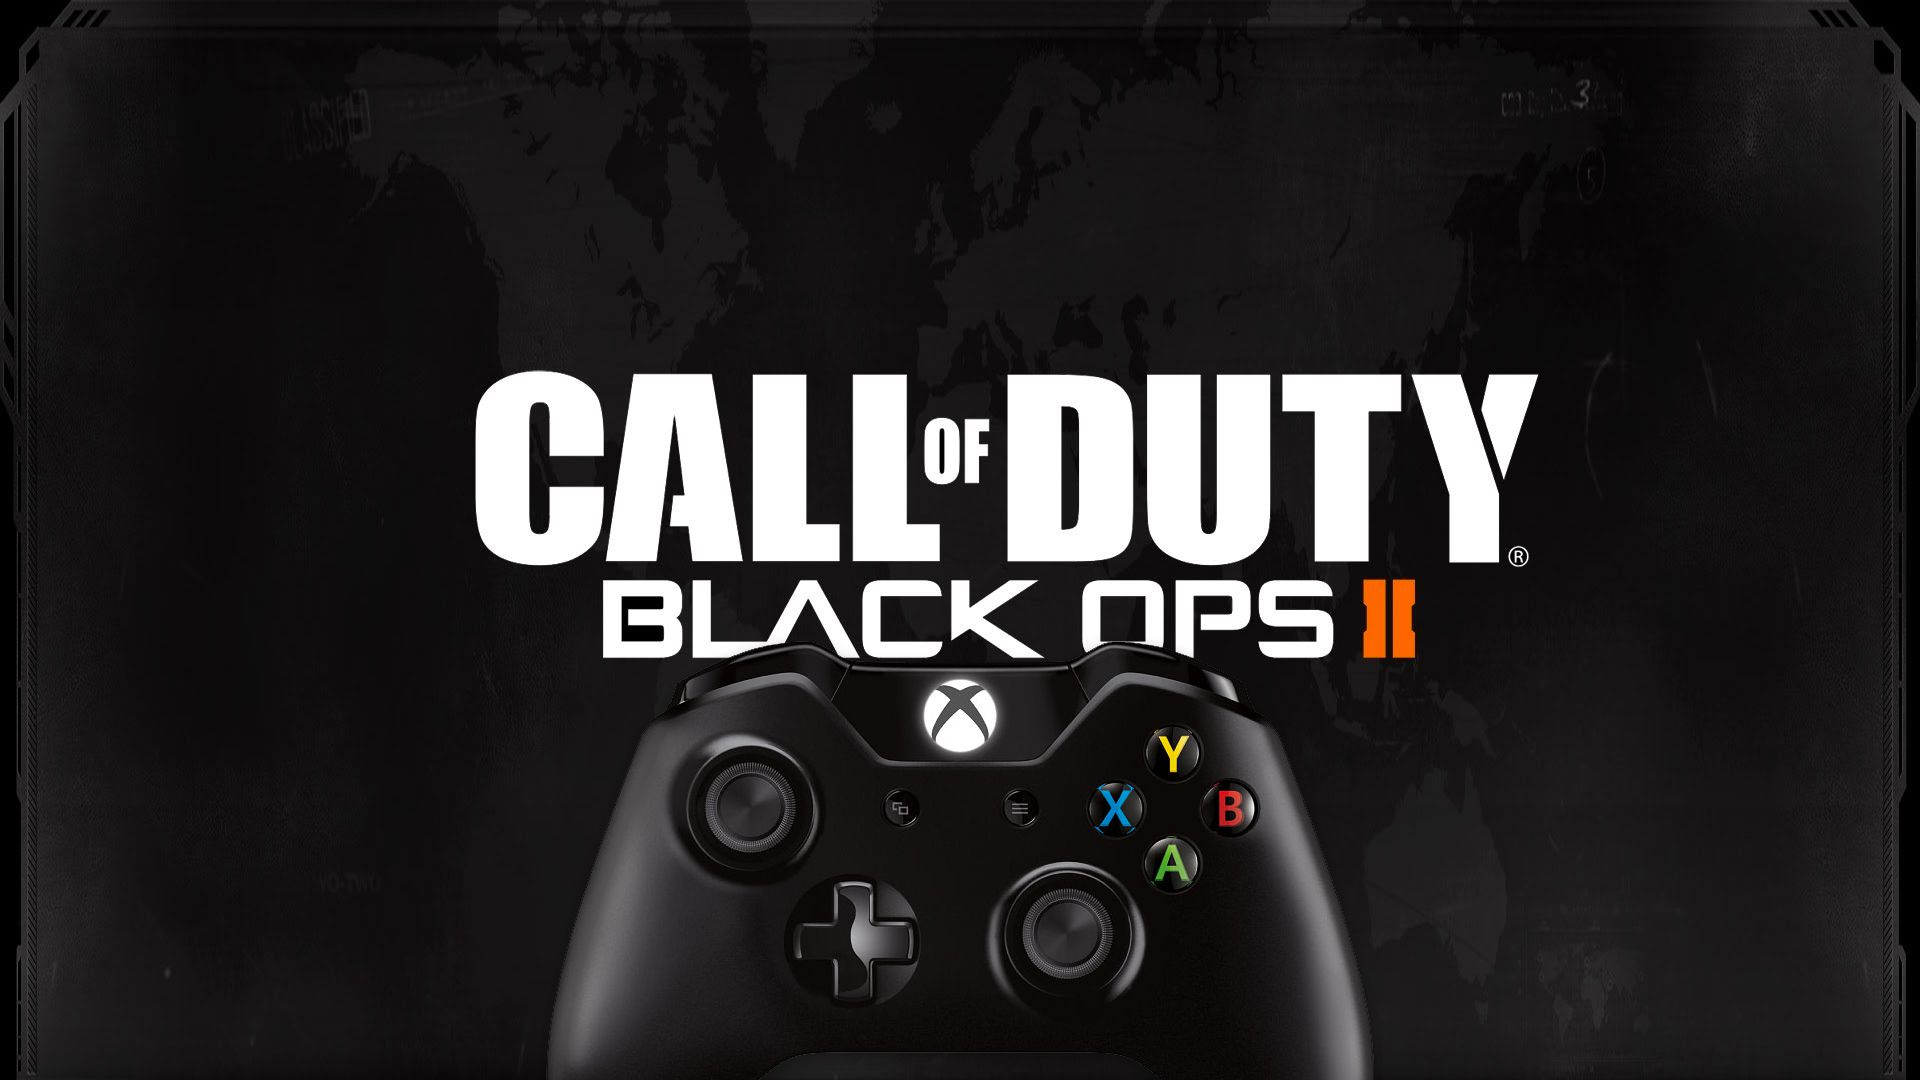 Call of Duty: Black Ops II FAQs/Walkthroughs - Neoseeker